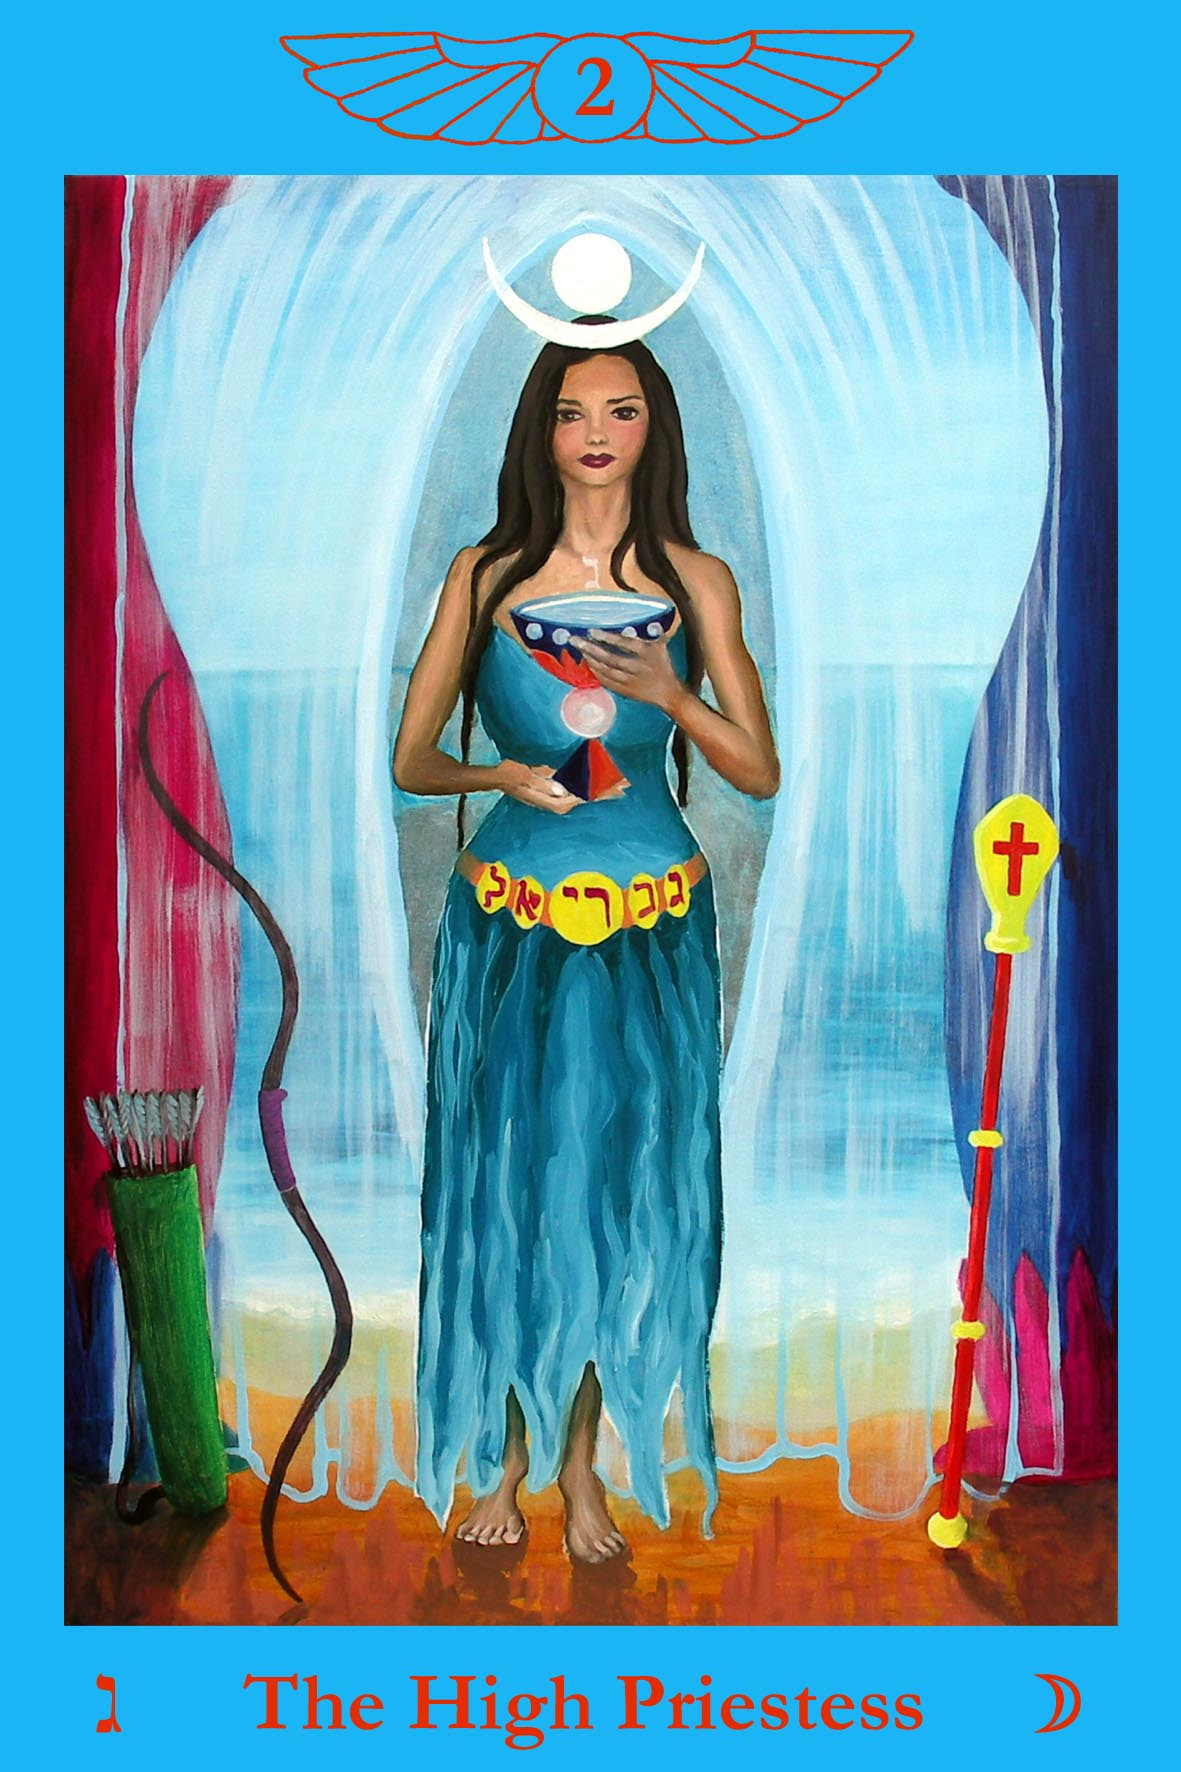 High Priestess Full Colorful Deck Major Stock Illustration: Living Tarot: The High Priestess